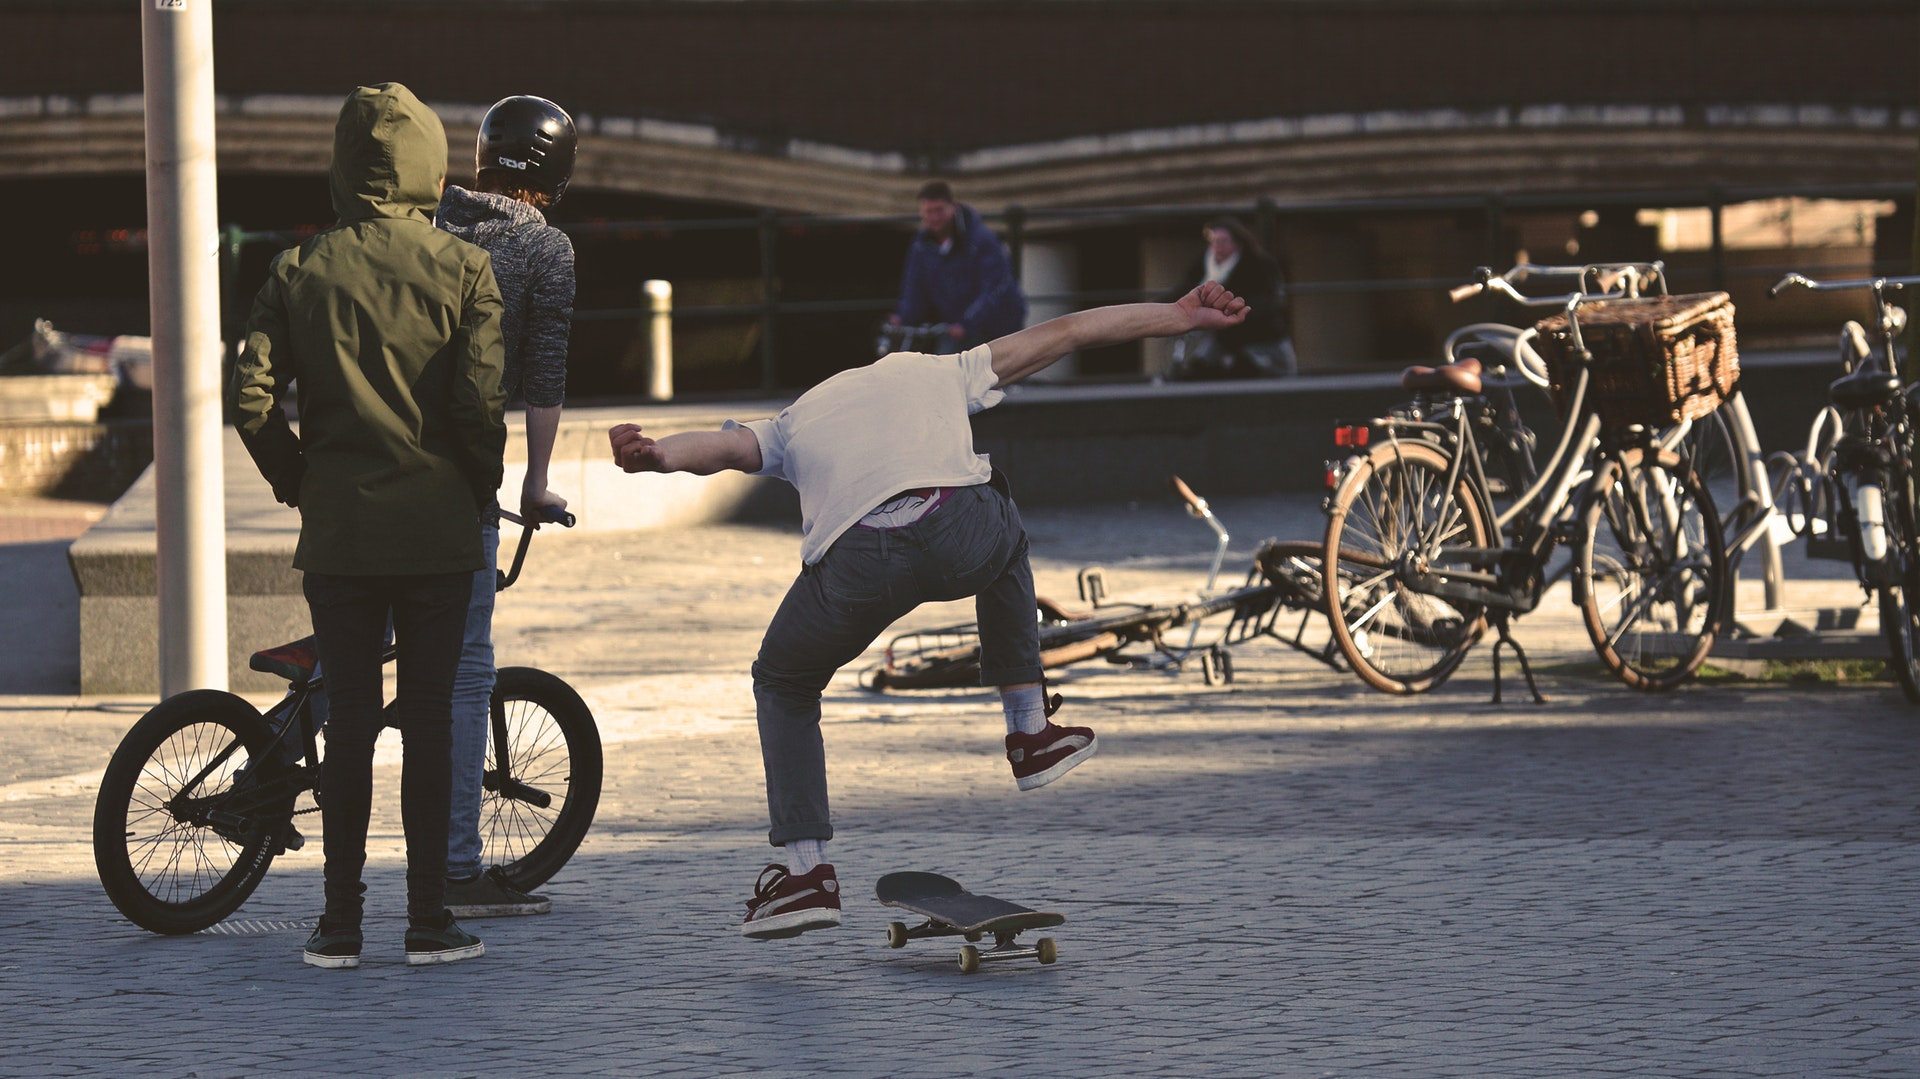 Skater with Bikers